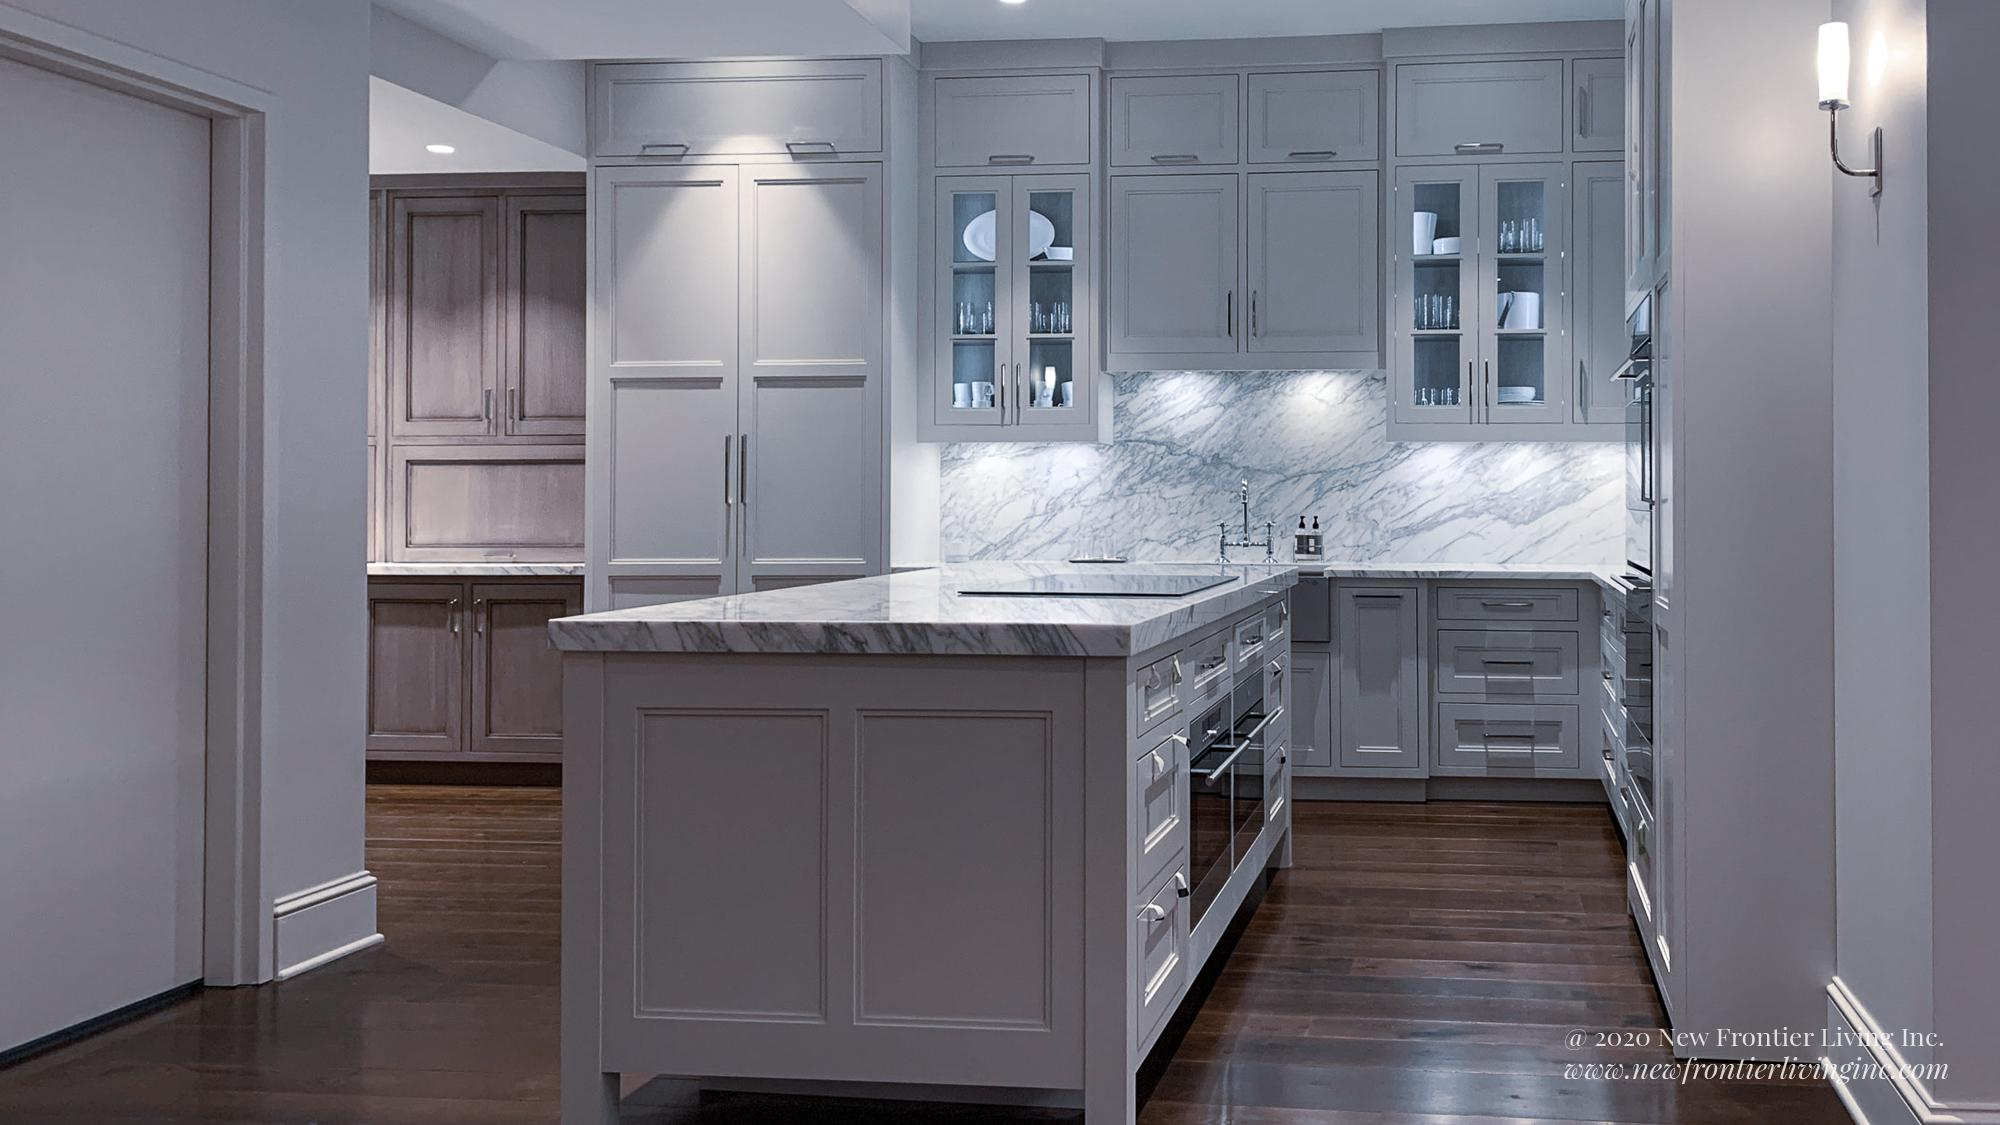 Pure white kitchen cabinetry and an island with semi-glass upper cabinets